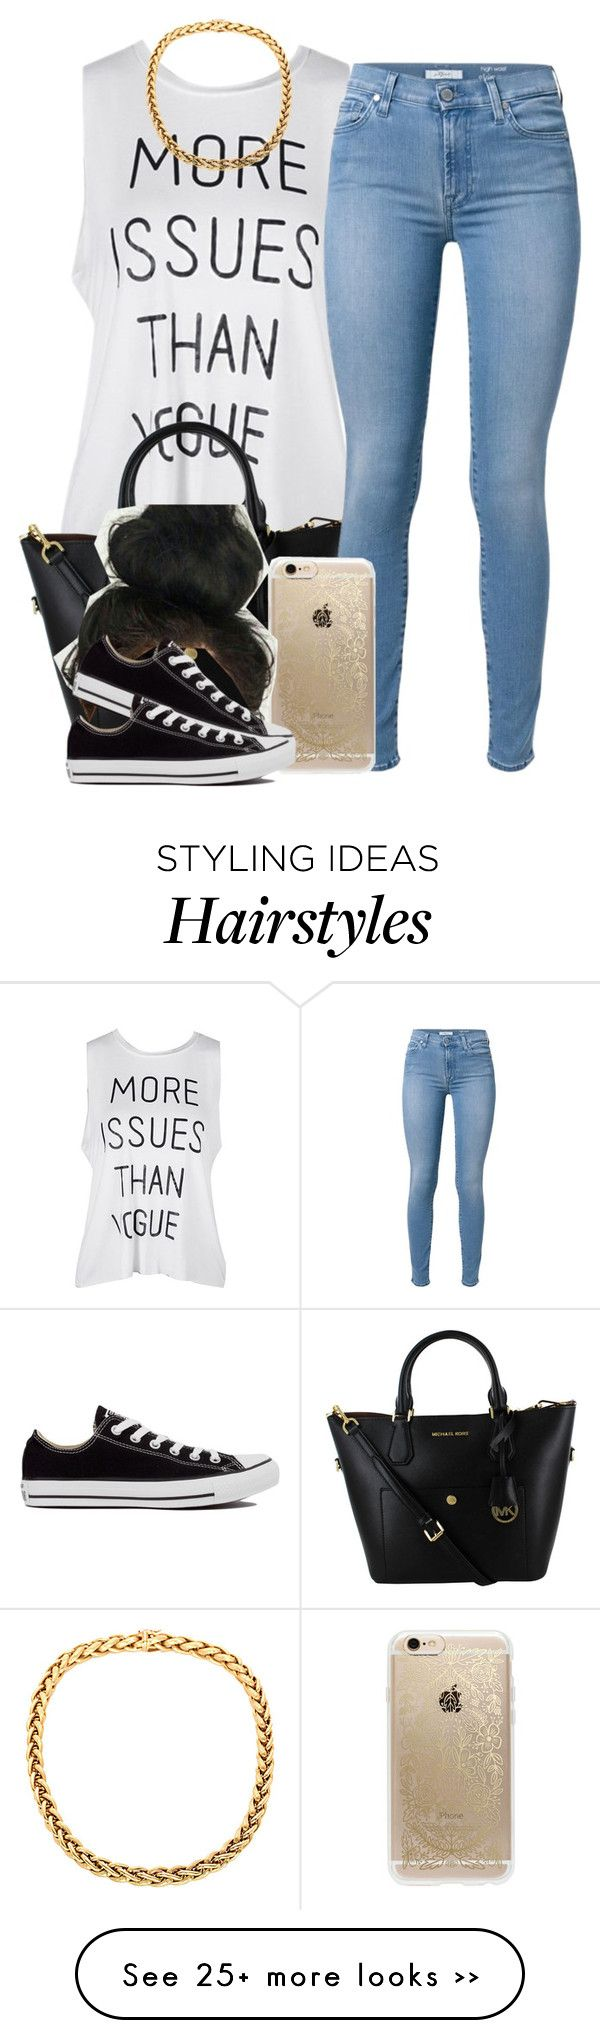 """."" by trillest-queen on Polyvore featuring 7 For All Mankind, Rifle Paper Co and Converse"